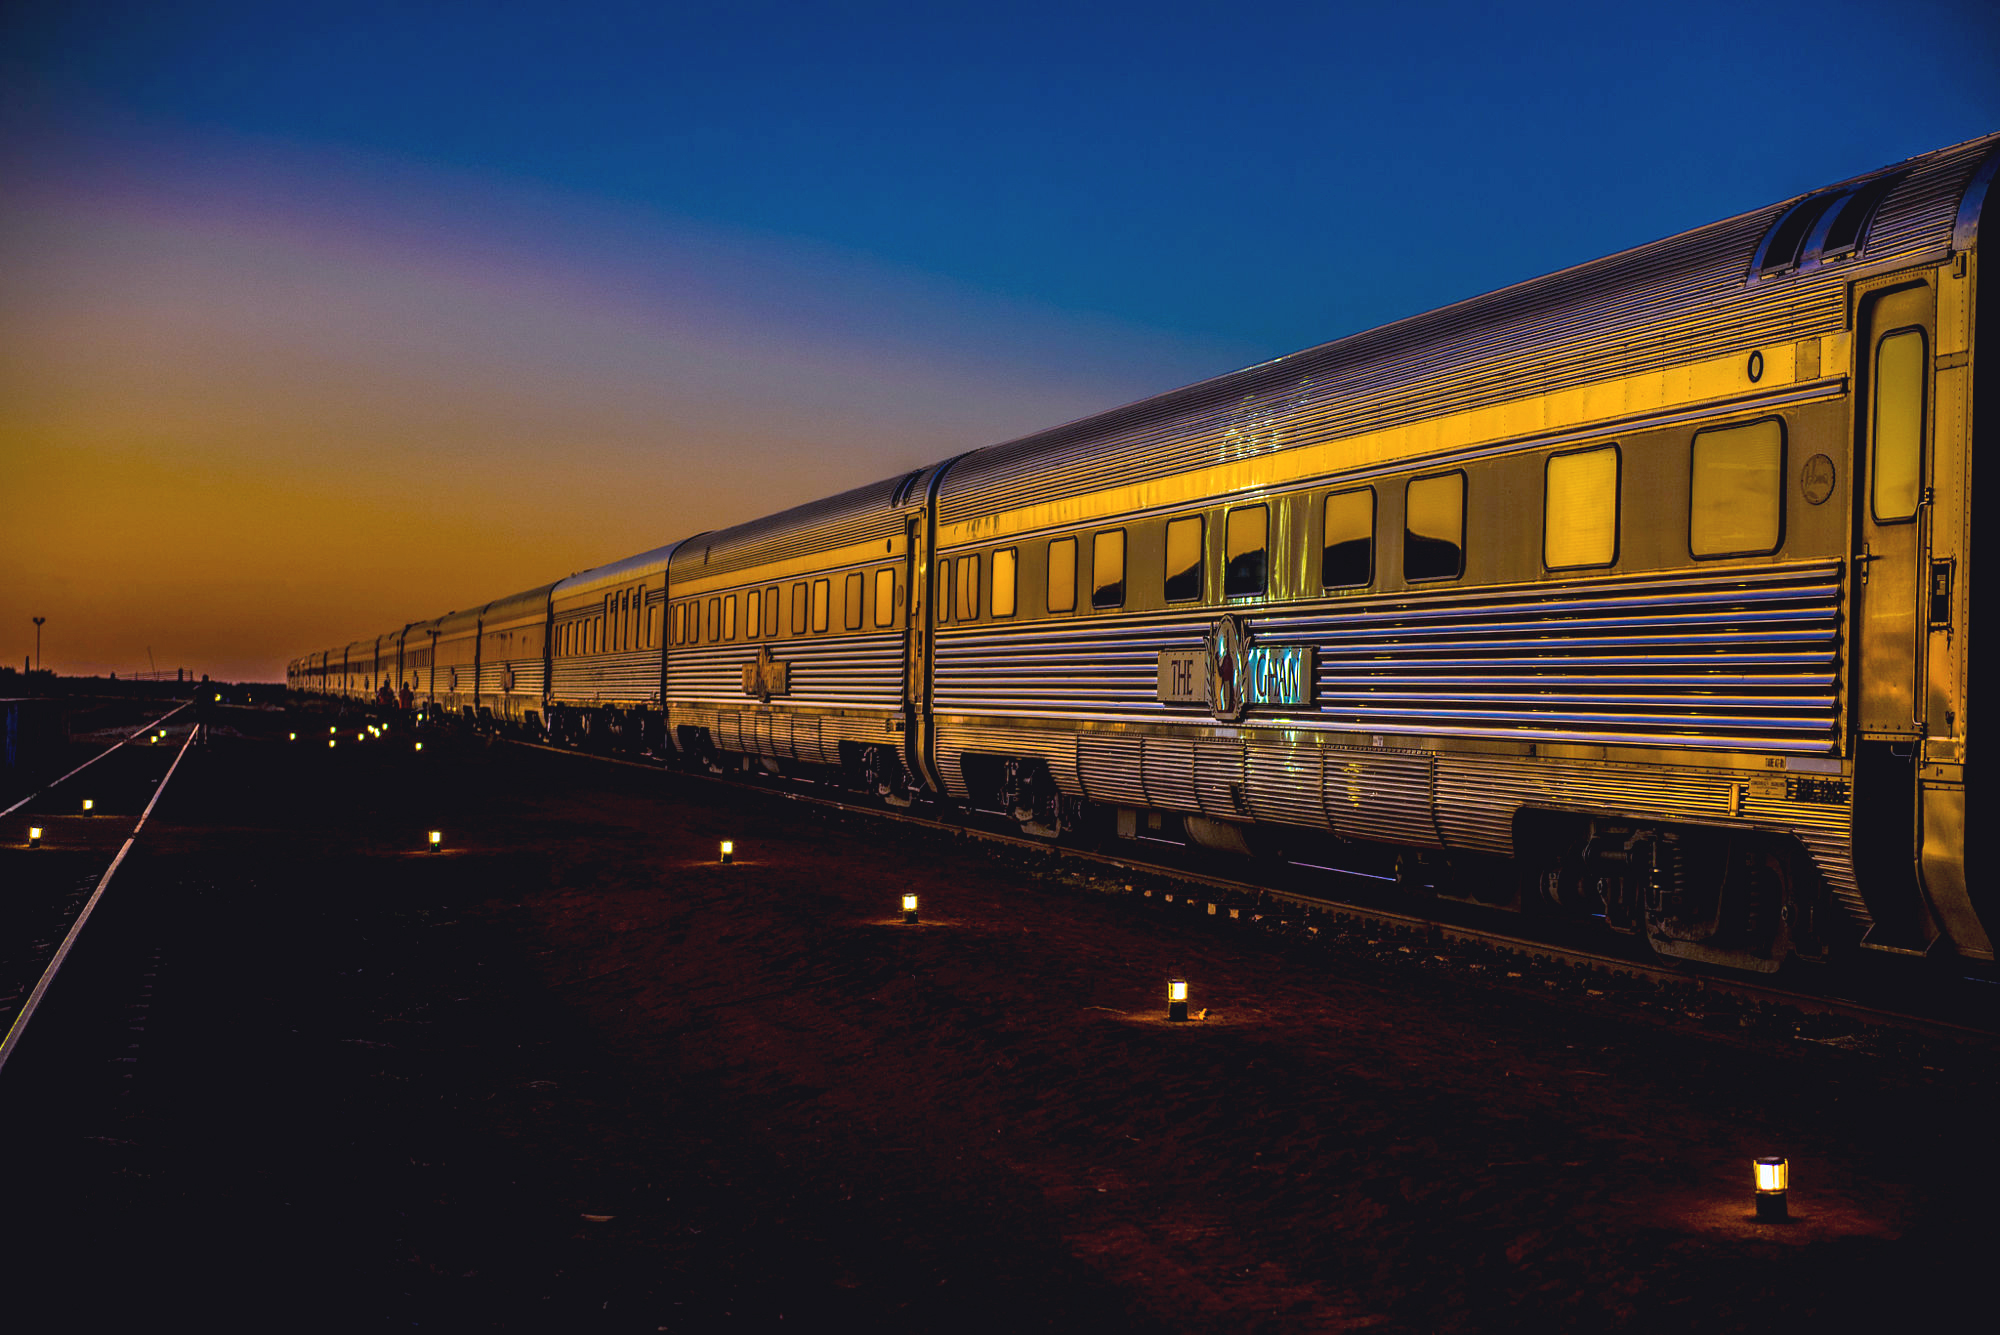 Night shot of a train rolling past, The Ghan, Australia